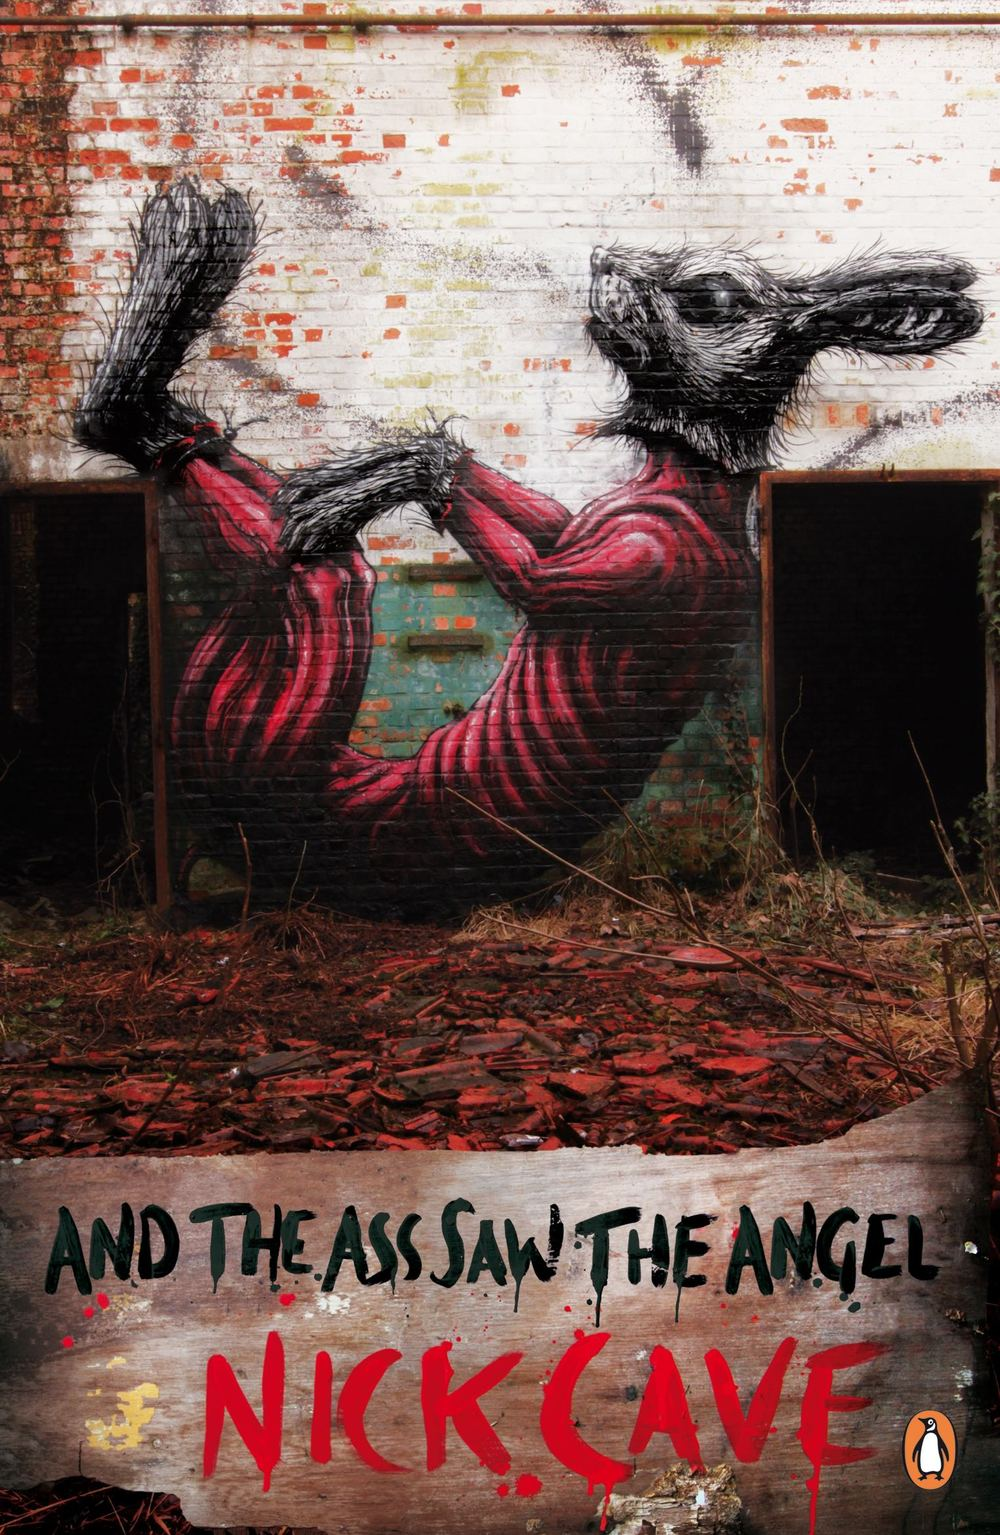 Penguin-Street-Art-And-the-Ass-saw-the-Angel.jpg